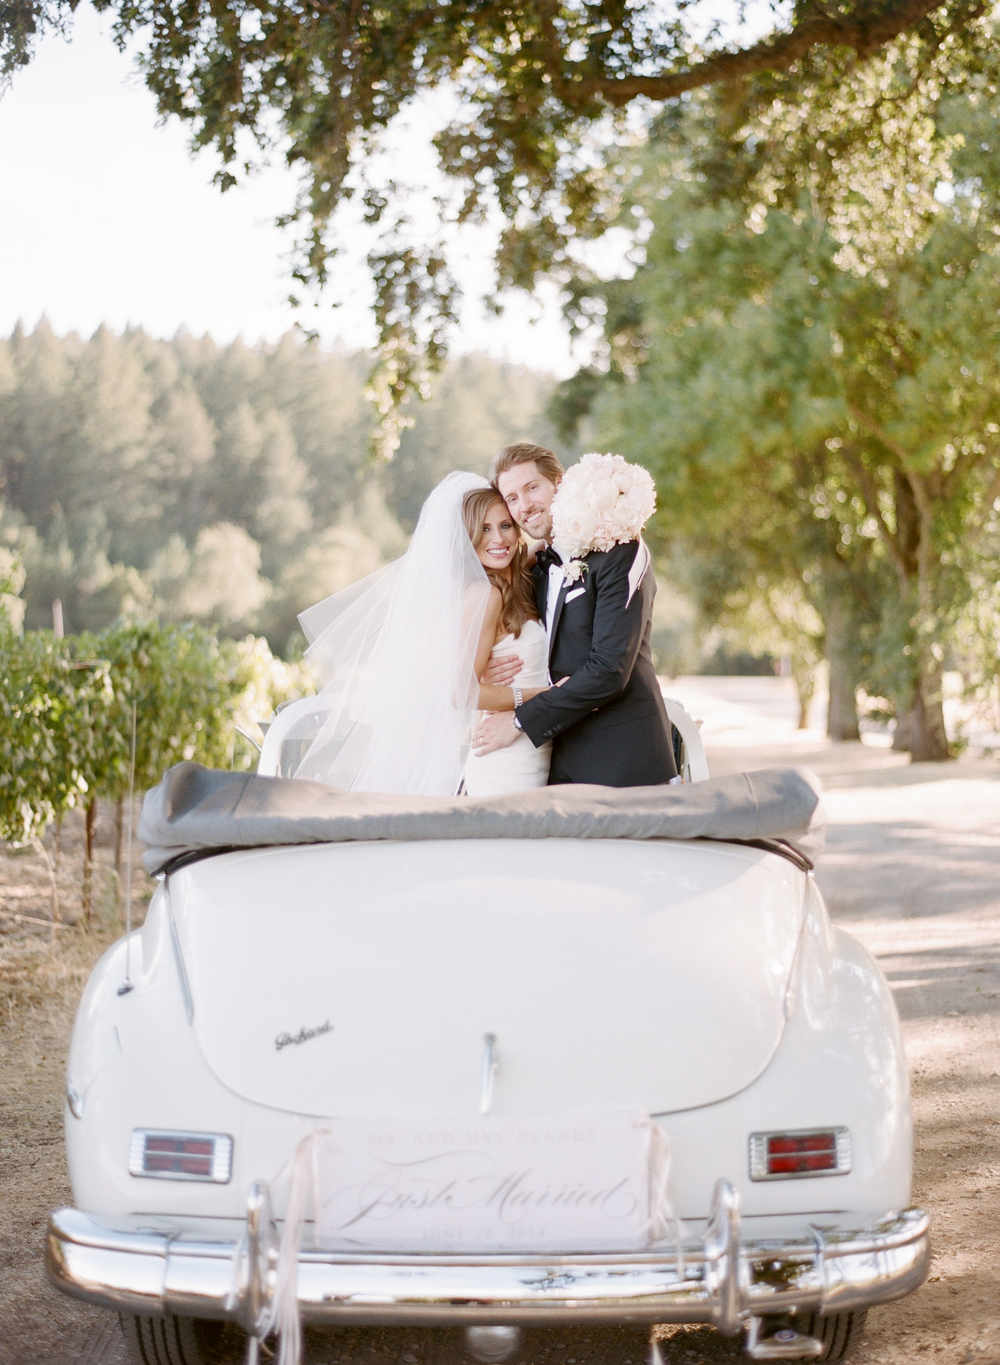 Lauren & Michael embrace, standing in a vintage white car in a winery during a couple shoot with Sylvie Gil